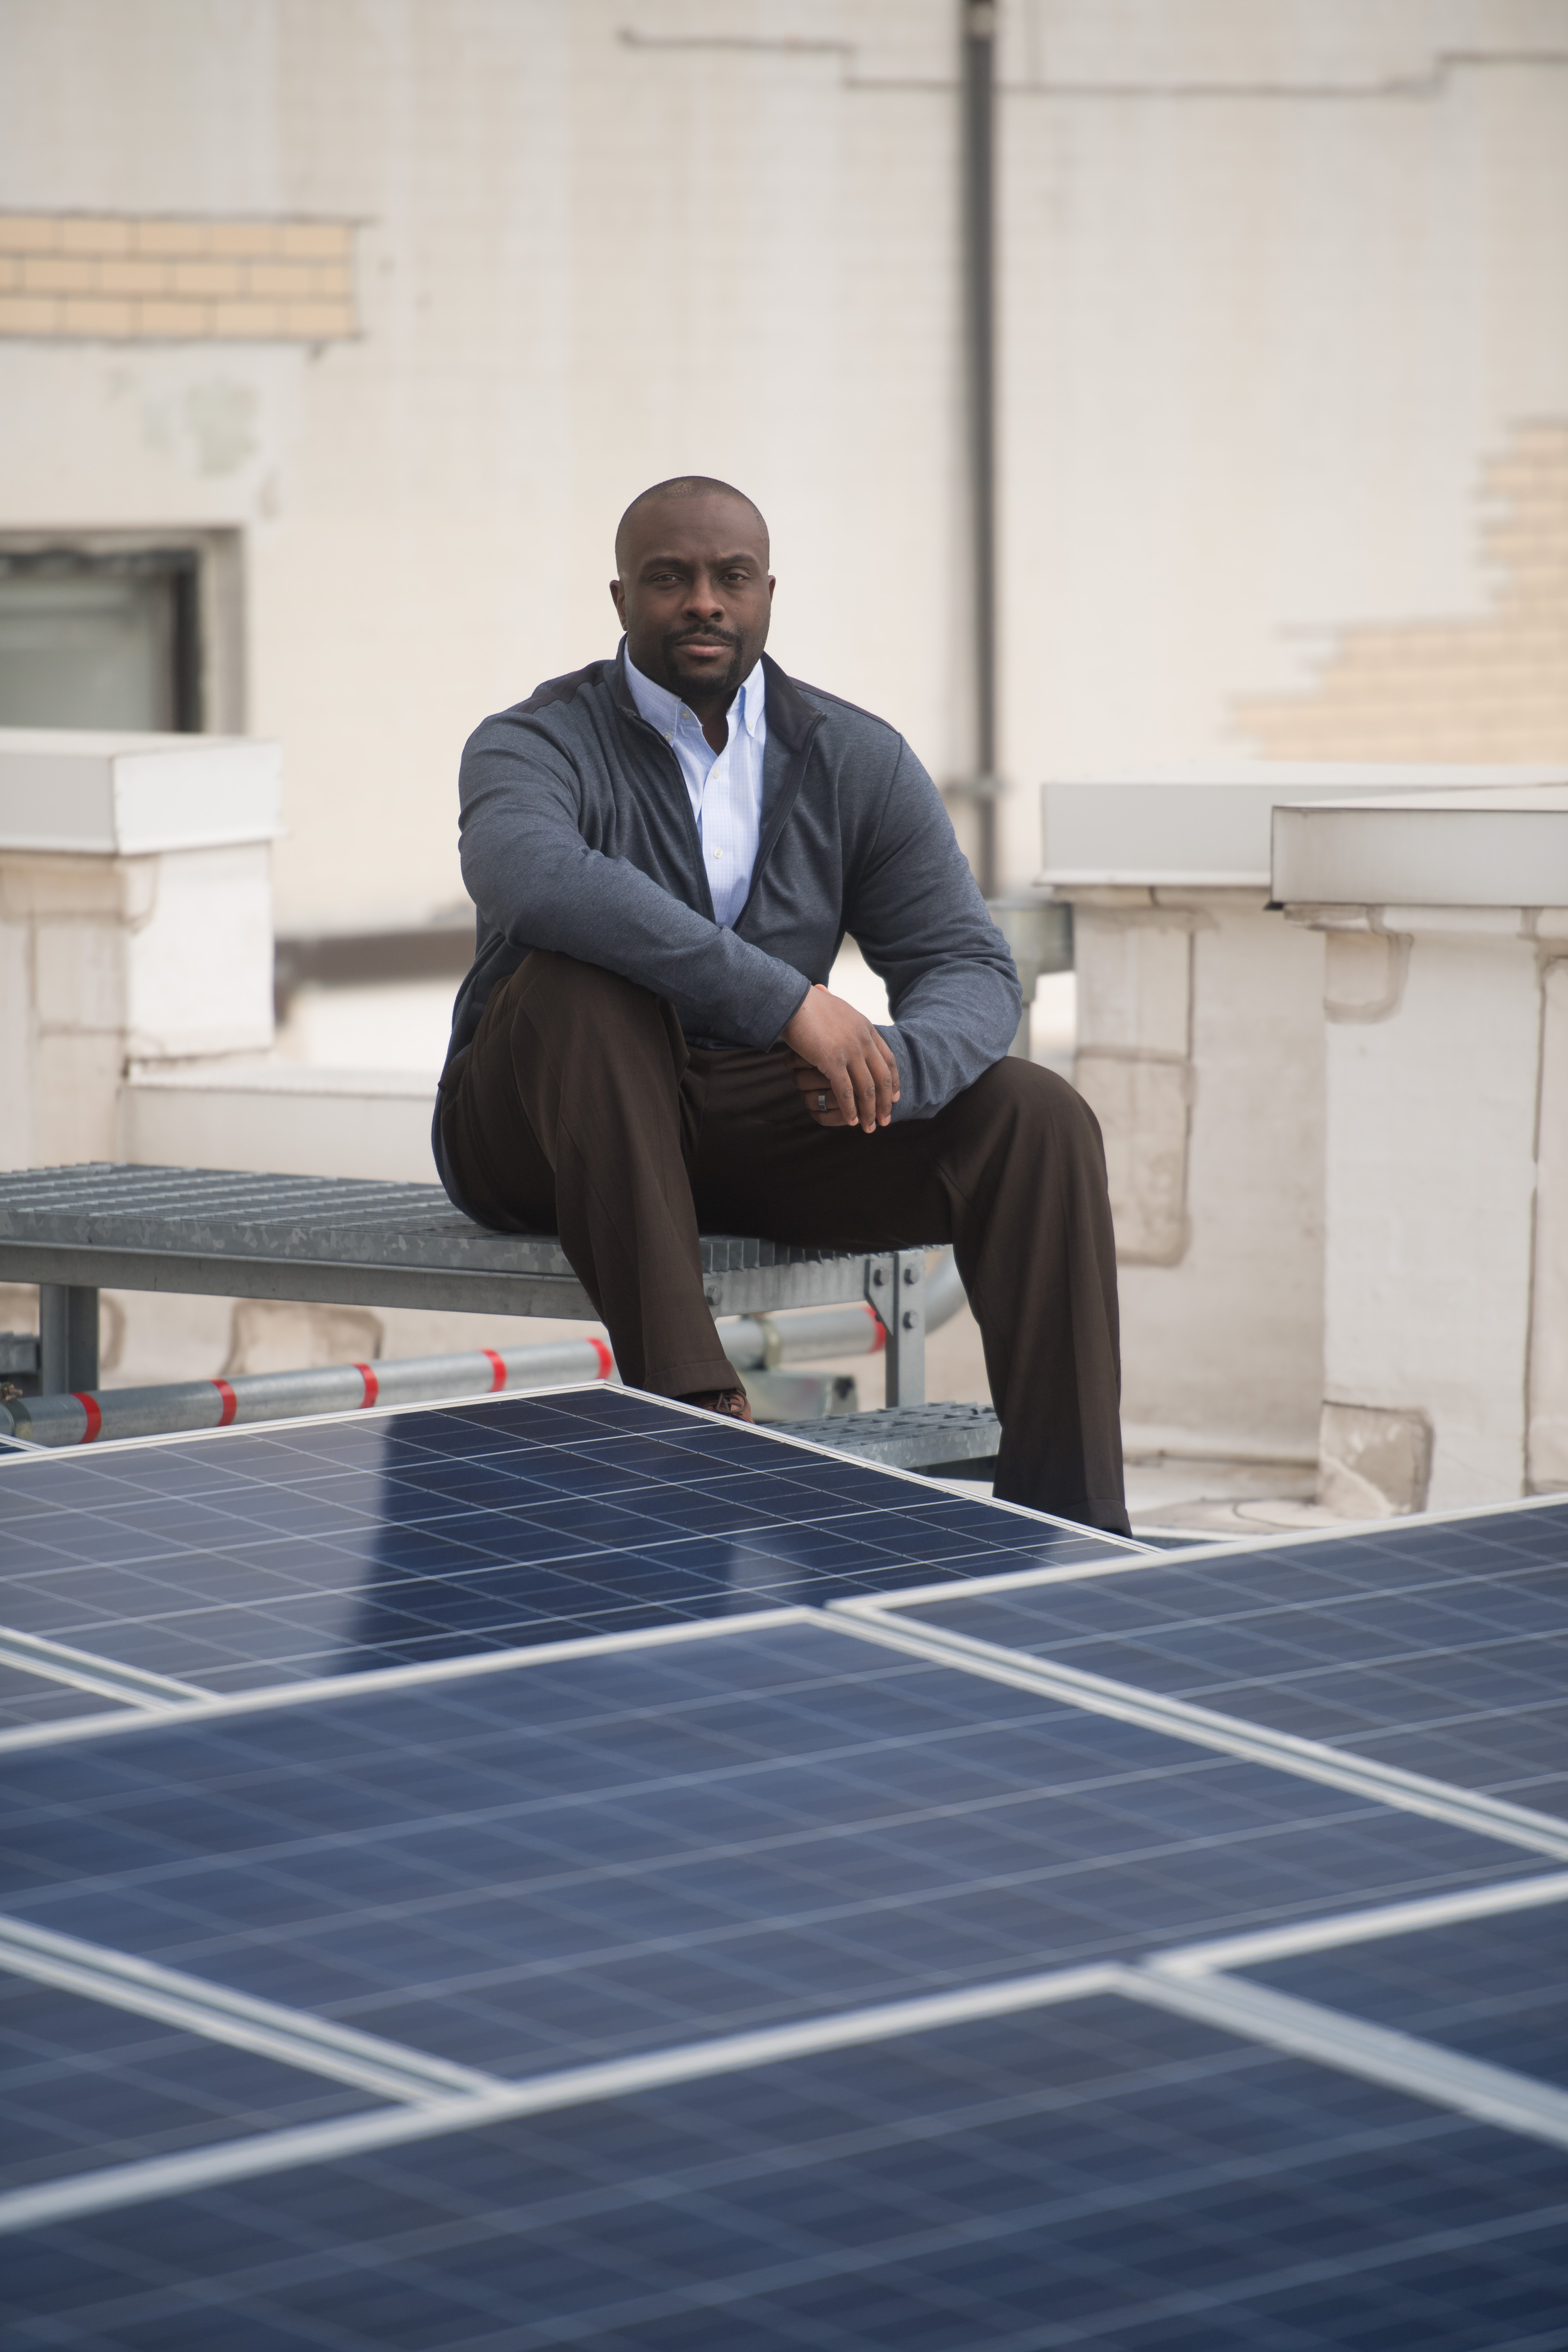 Andrew Ried, a Con Edison employee, near a solar panel installation.